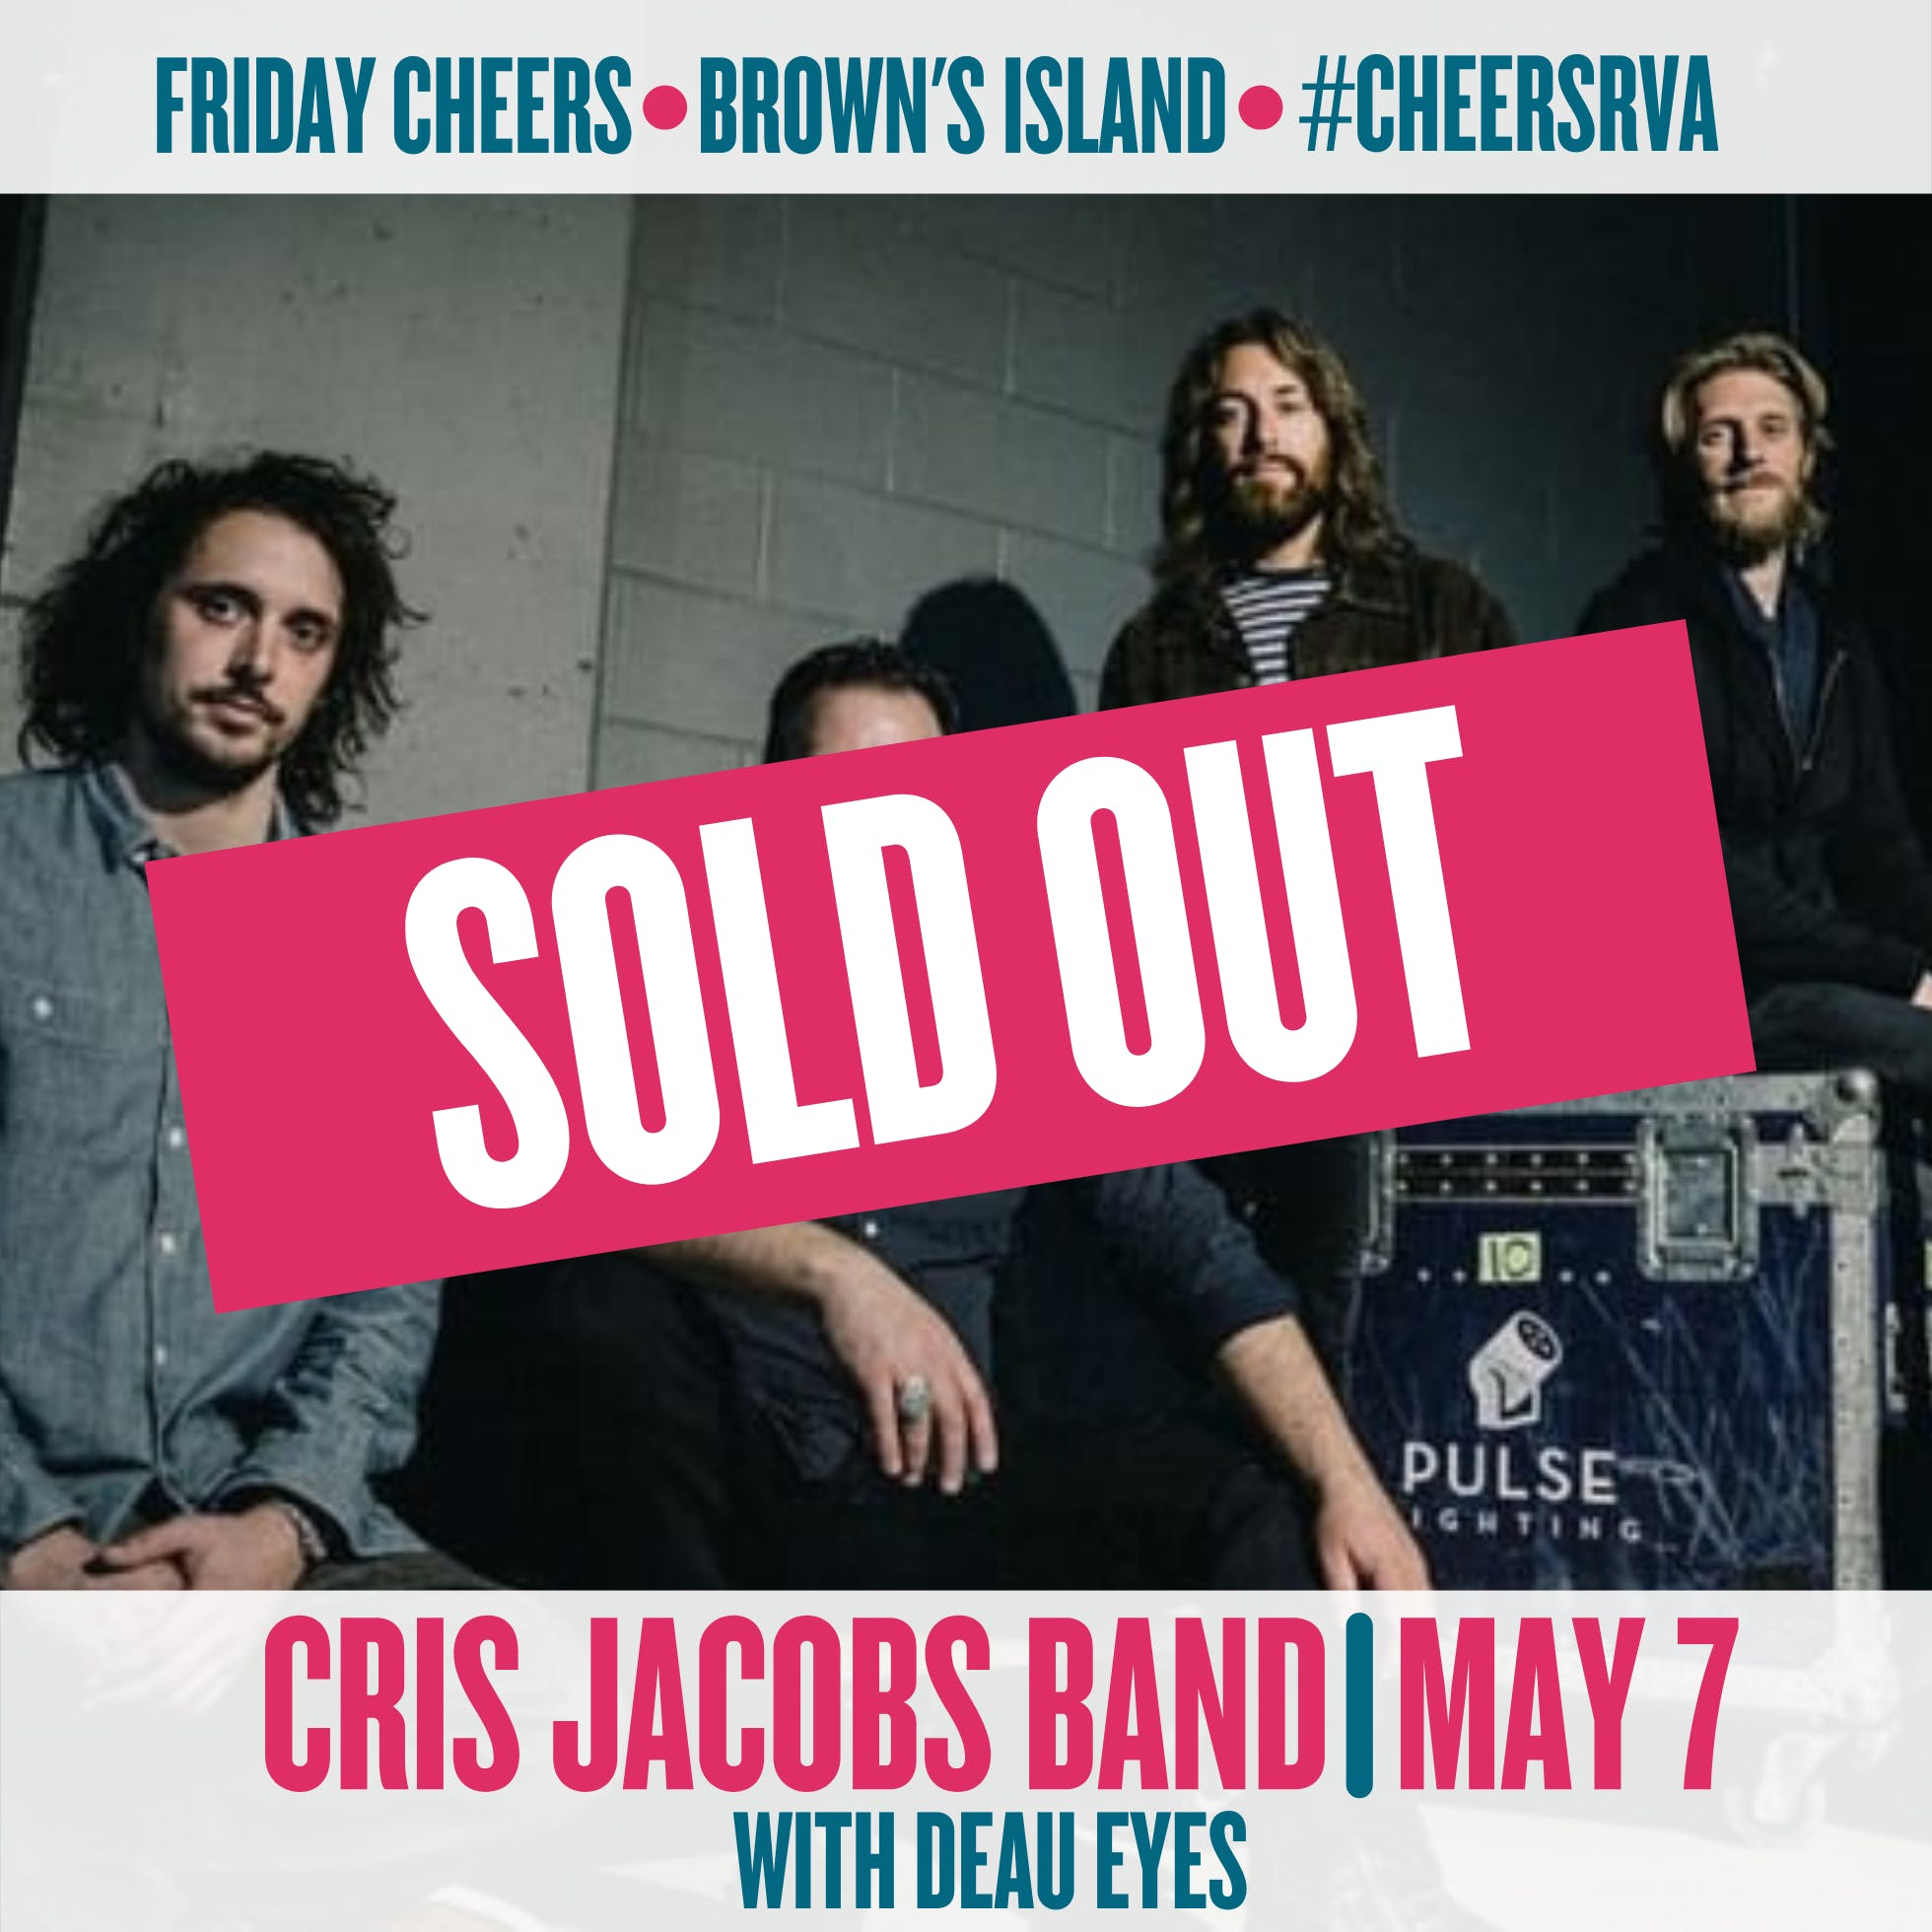 Cris Jacobs Band with Deau Eyes